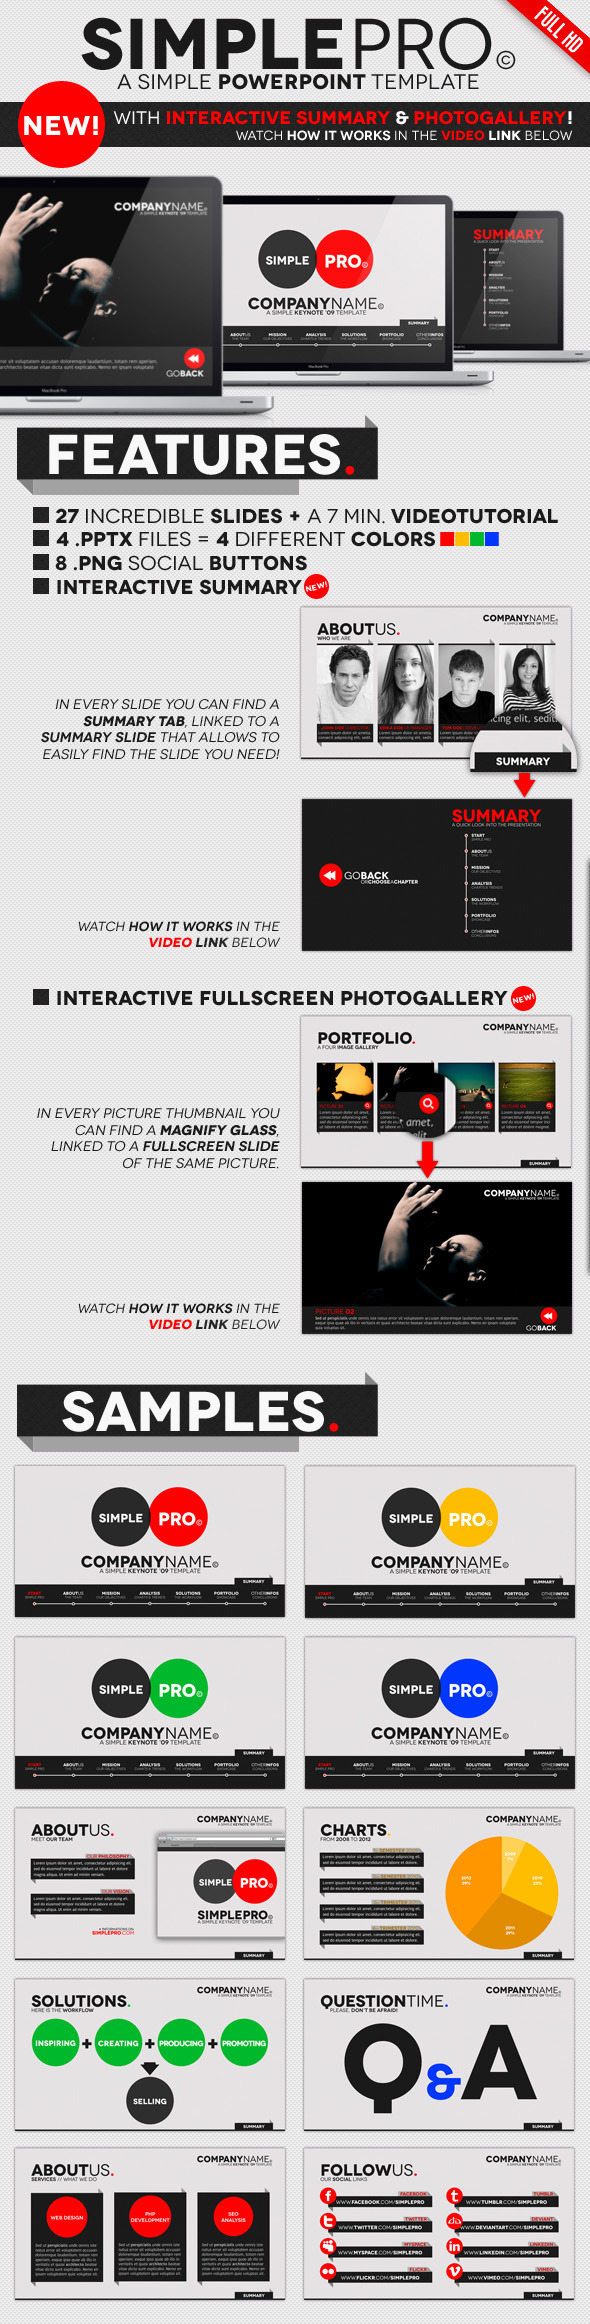 Simple Pro PowerPoint Interactive Template